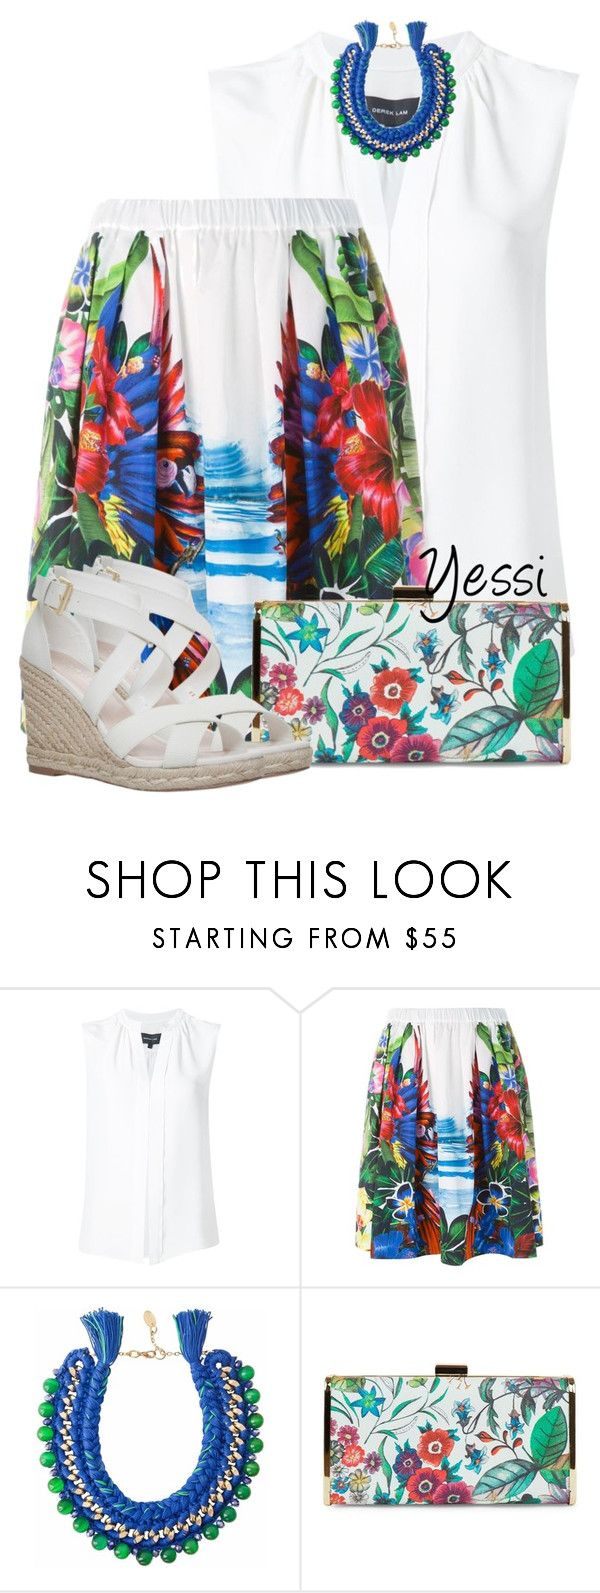 """~ 💕 Tropical 💕 ~"" by pretty-fashion-designs ❤ liked on Polyvore featuring Derek Lam, Dsquared2, Ricardo Rodriguez, Jessica McClintock and Carvela"